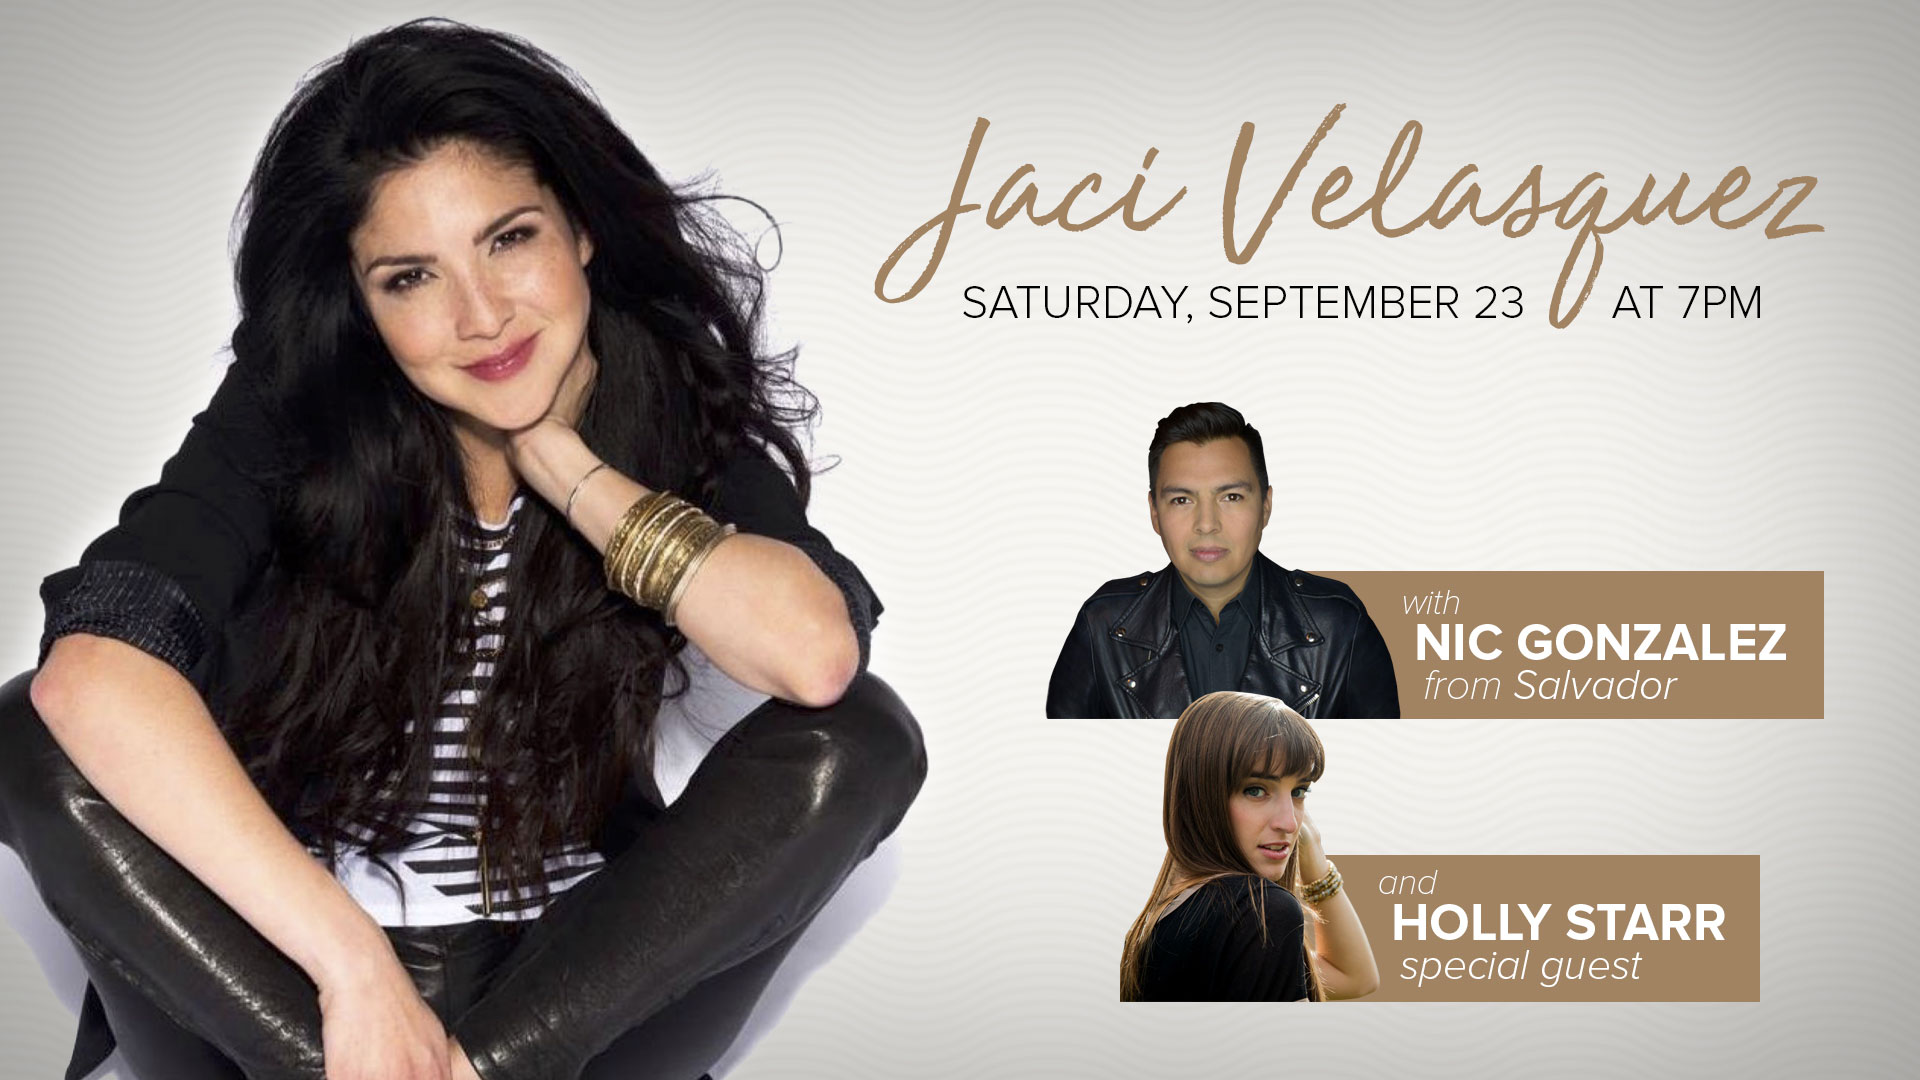 Jaci Velasquez and Nic Gonzales plus Holly Starr